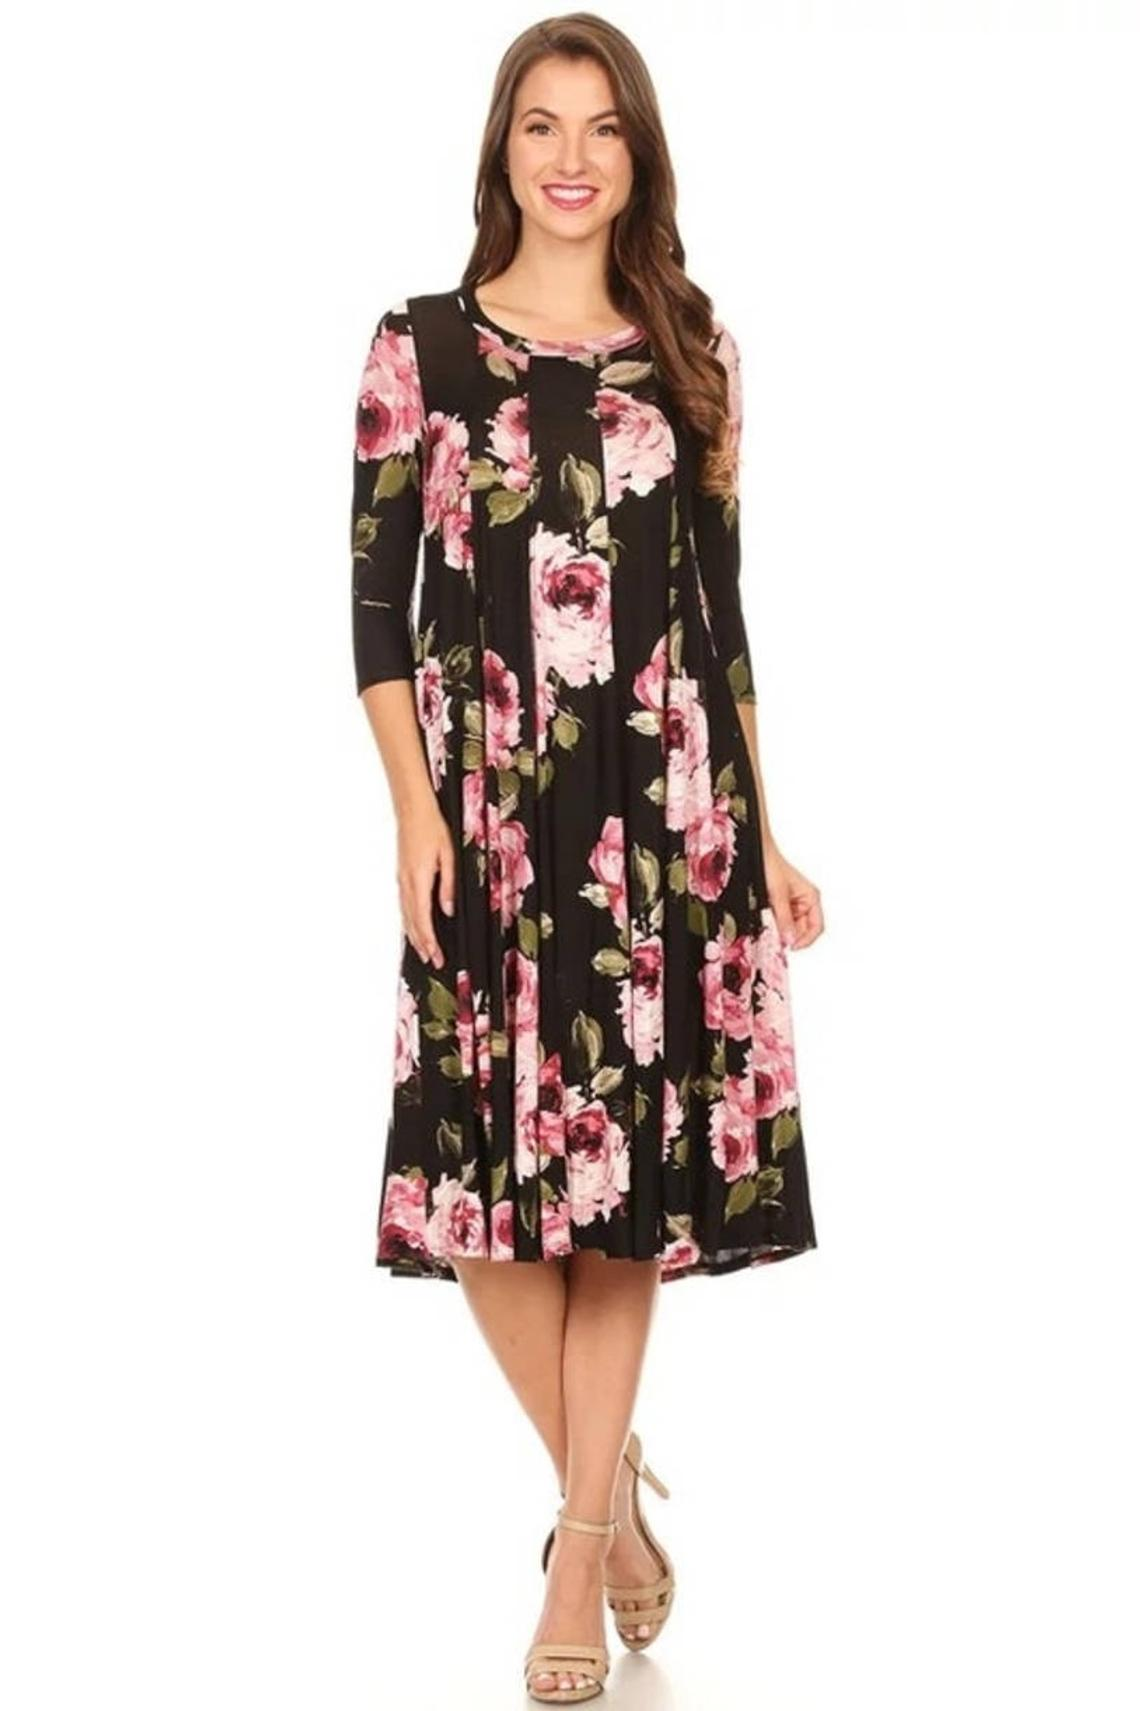 Floral Print Dresses Knee Length Buy Dresses Online